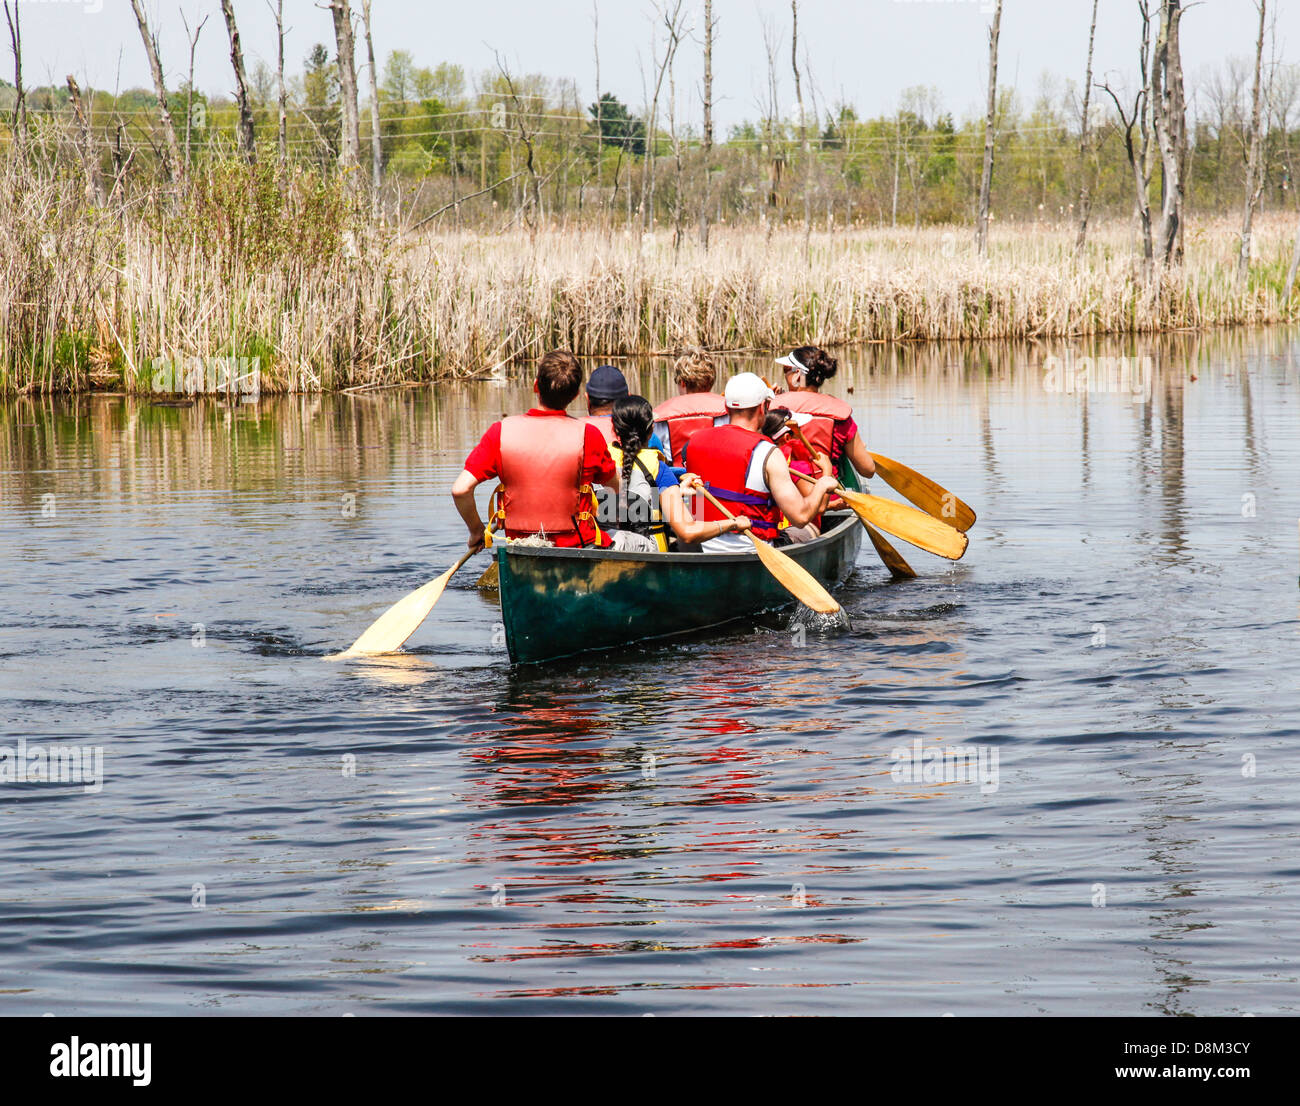 Canoe trip in the wetlands at Wye Marsh in Midland;Ontario;Canada;North America - Stock Image